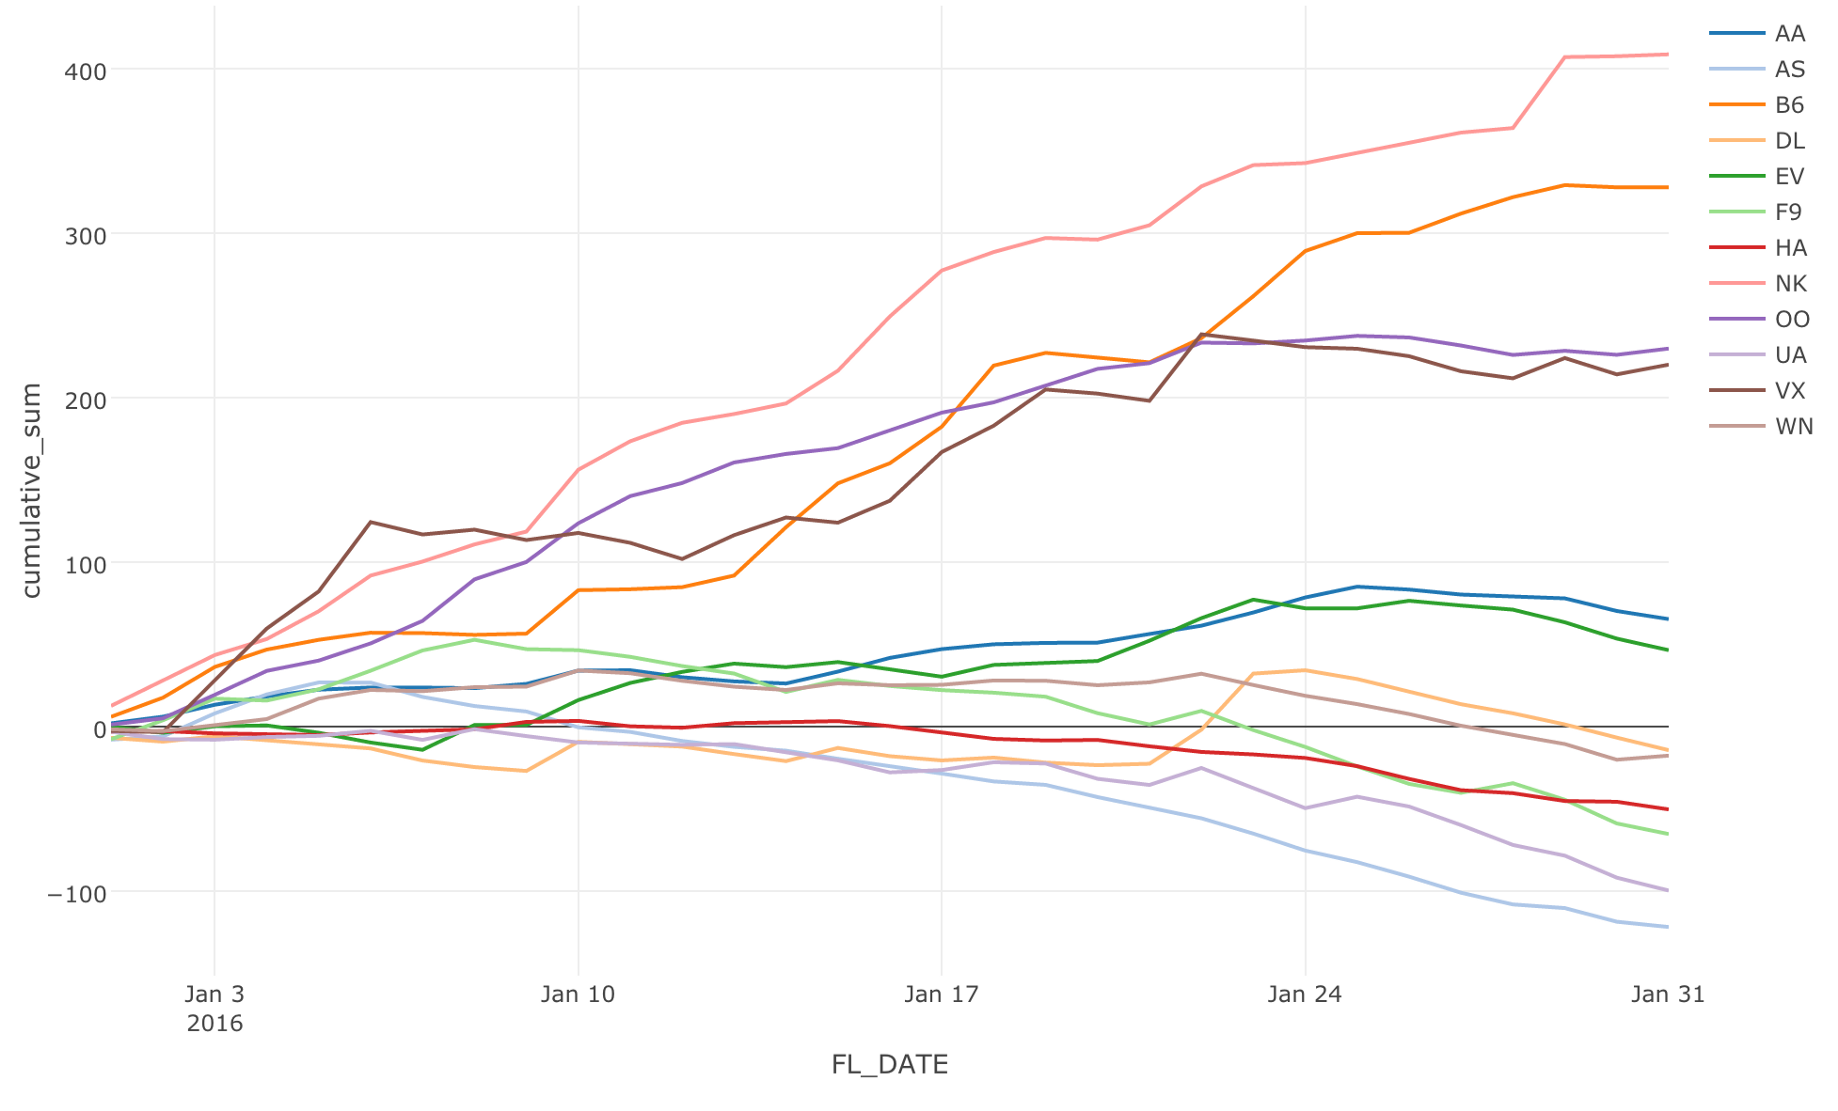 Why SQL is not for Analysis, but dplyr is - learn data science